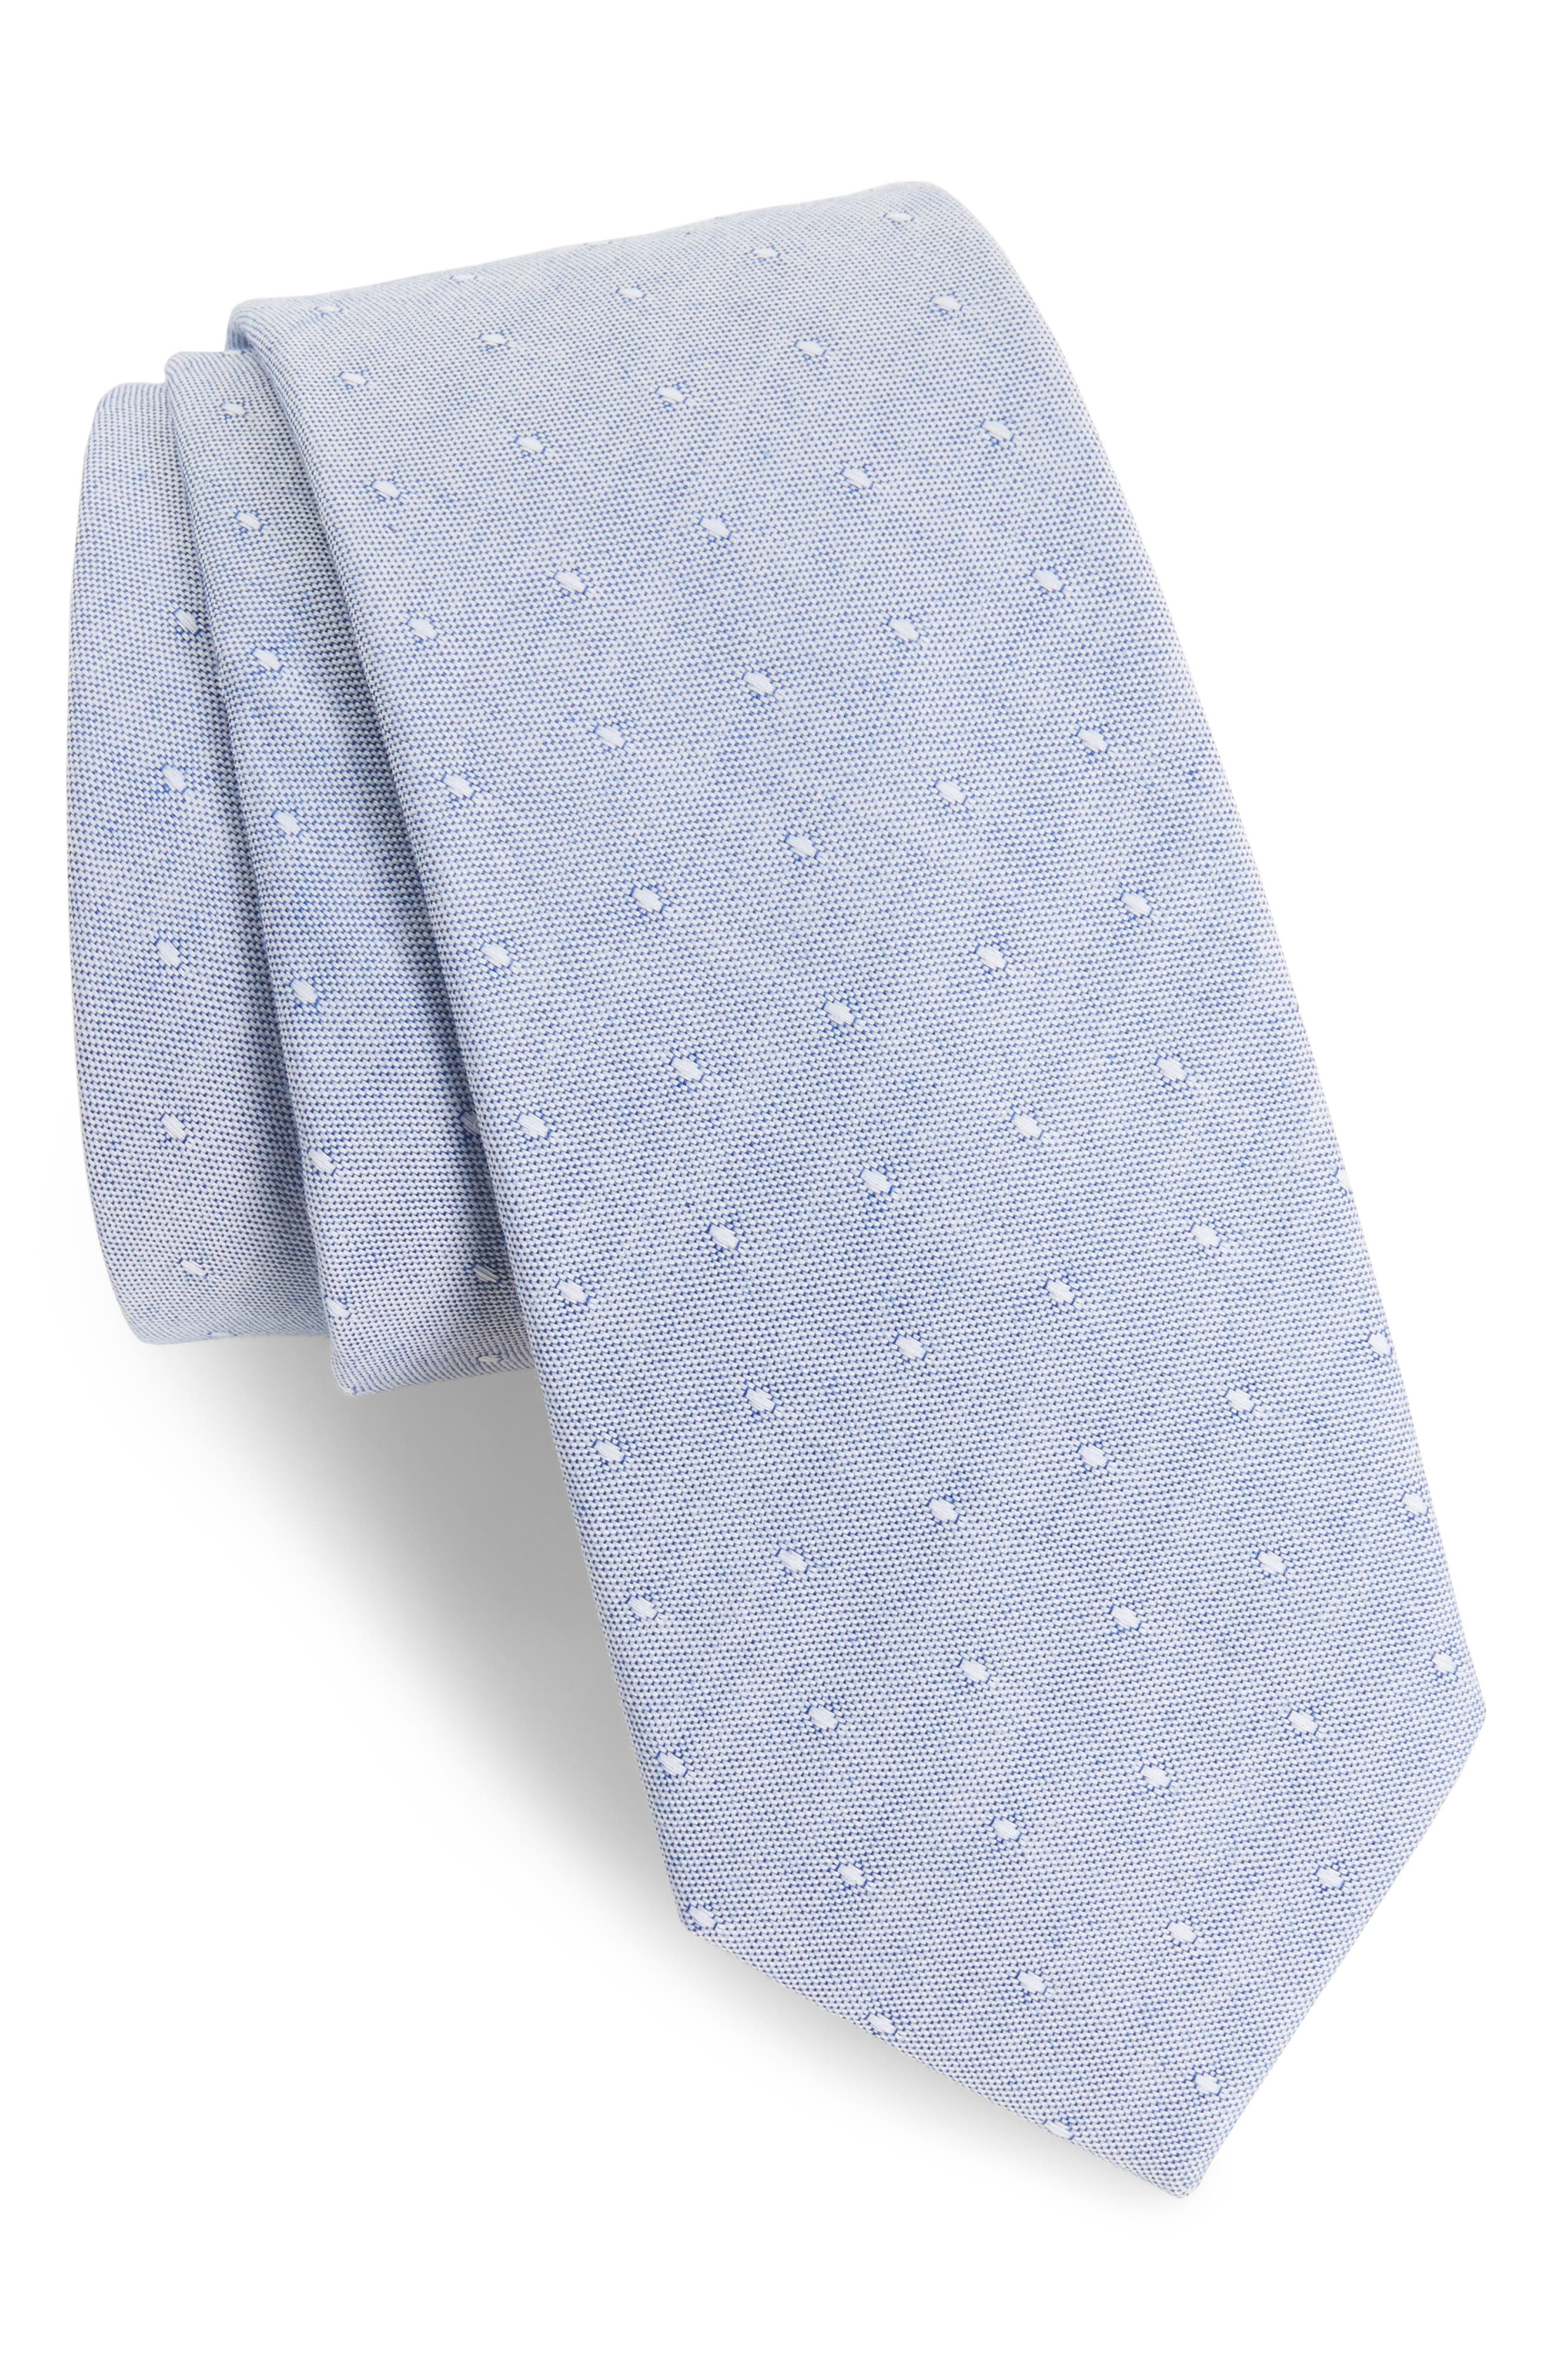 Alternate Image 1 Selected - 1901 Lantana Dot Cotton Skinny Tie